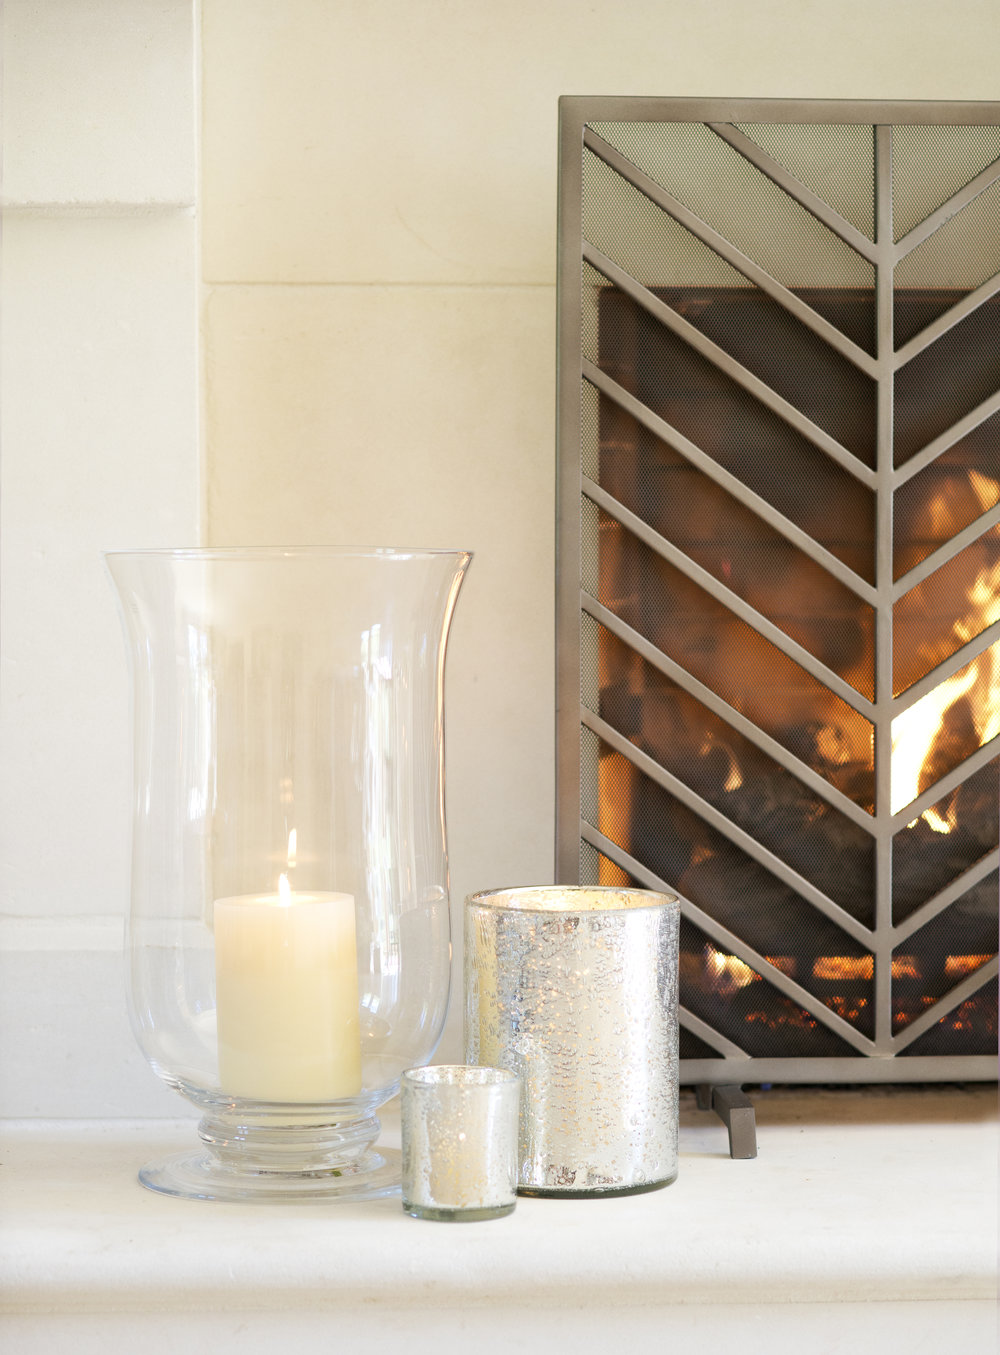 My Splendid Living has partnered with Crate & Barrel for an elegant Fireplace display! #cratestyle